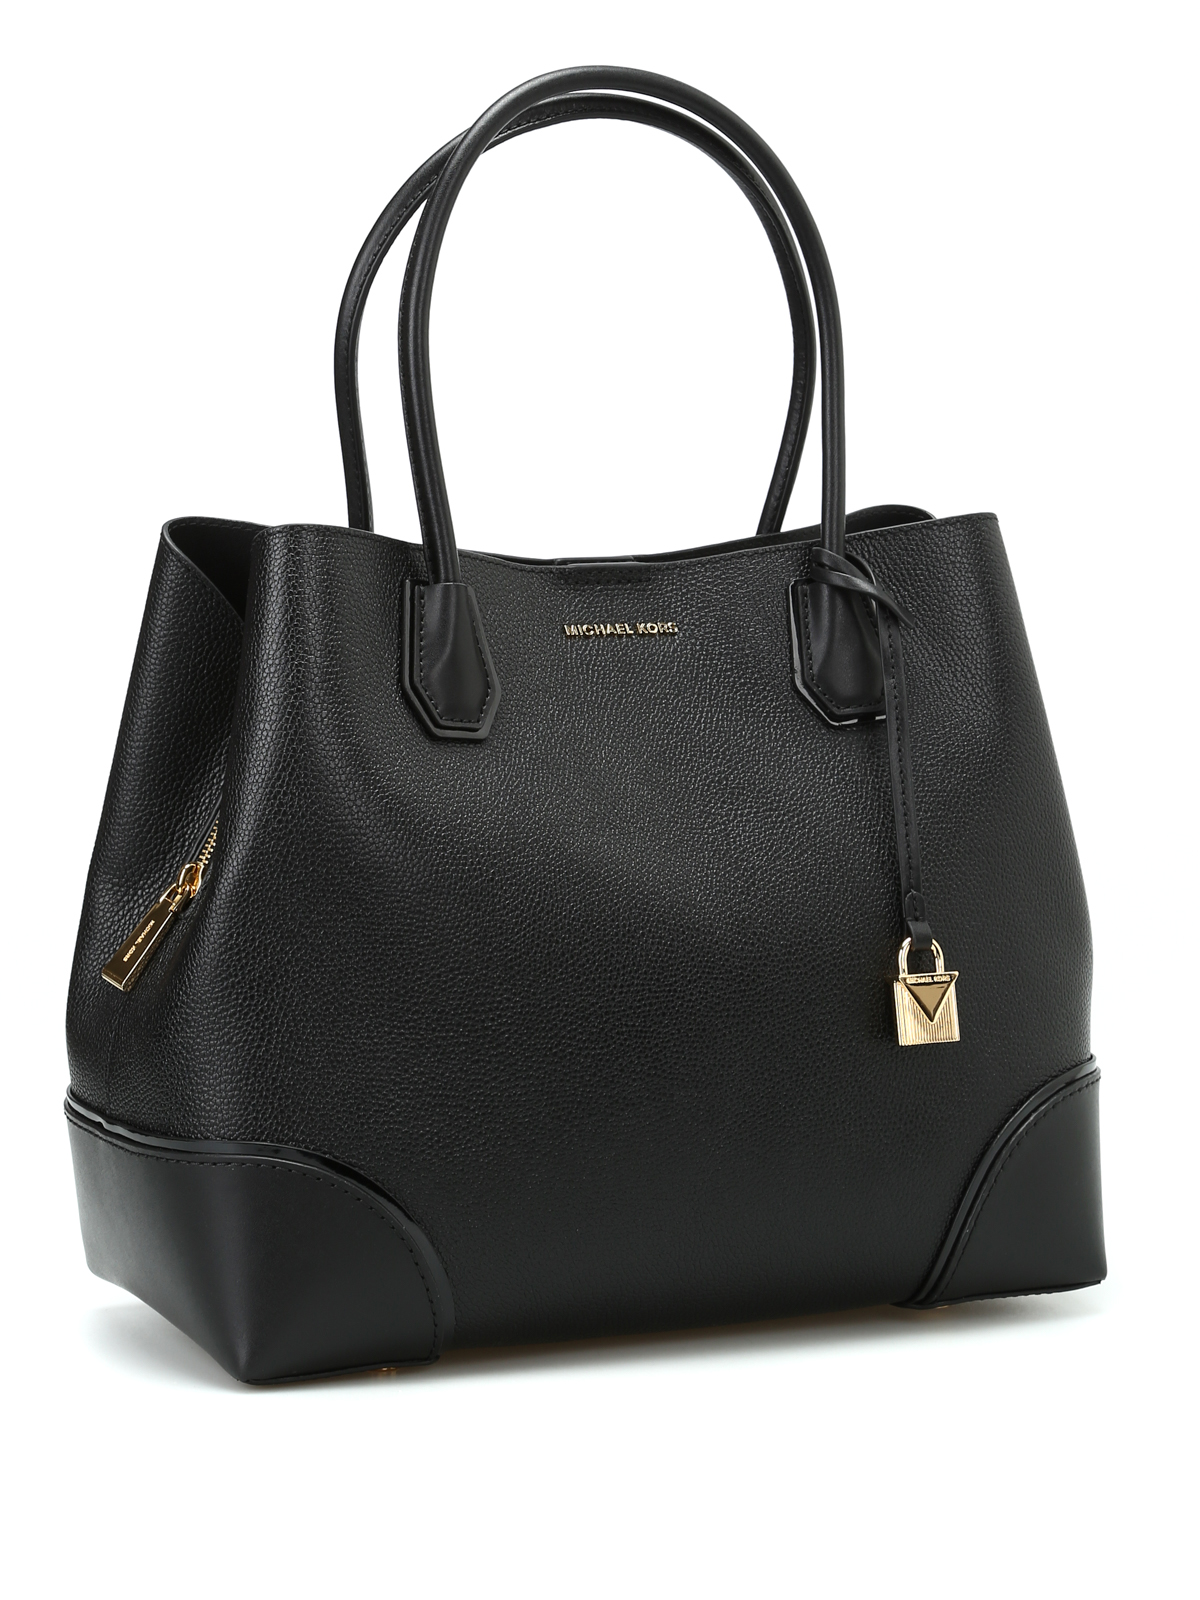 mercer corner black large tote by michael kors totes bags shop online at. Black Bedroom Furniture Sets. Home Design Ideas